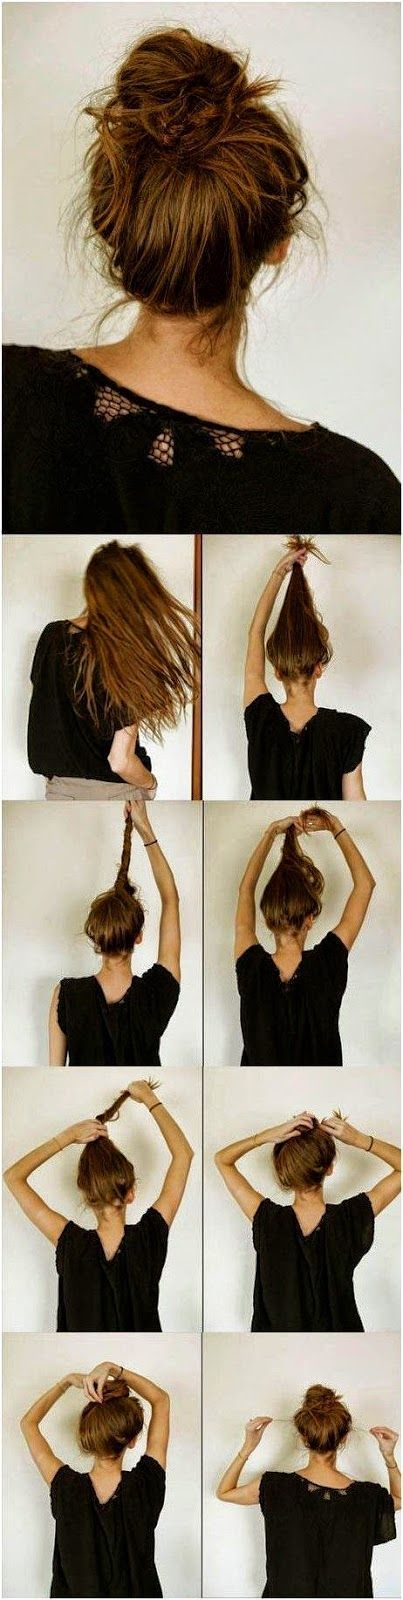 Pleasing 1000 Ideas About Easy Bun Hairstyles On Pinterest Easy Bun Bun Hairstyle Inspiration Daily Dogsangcom